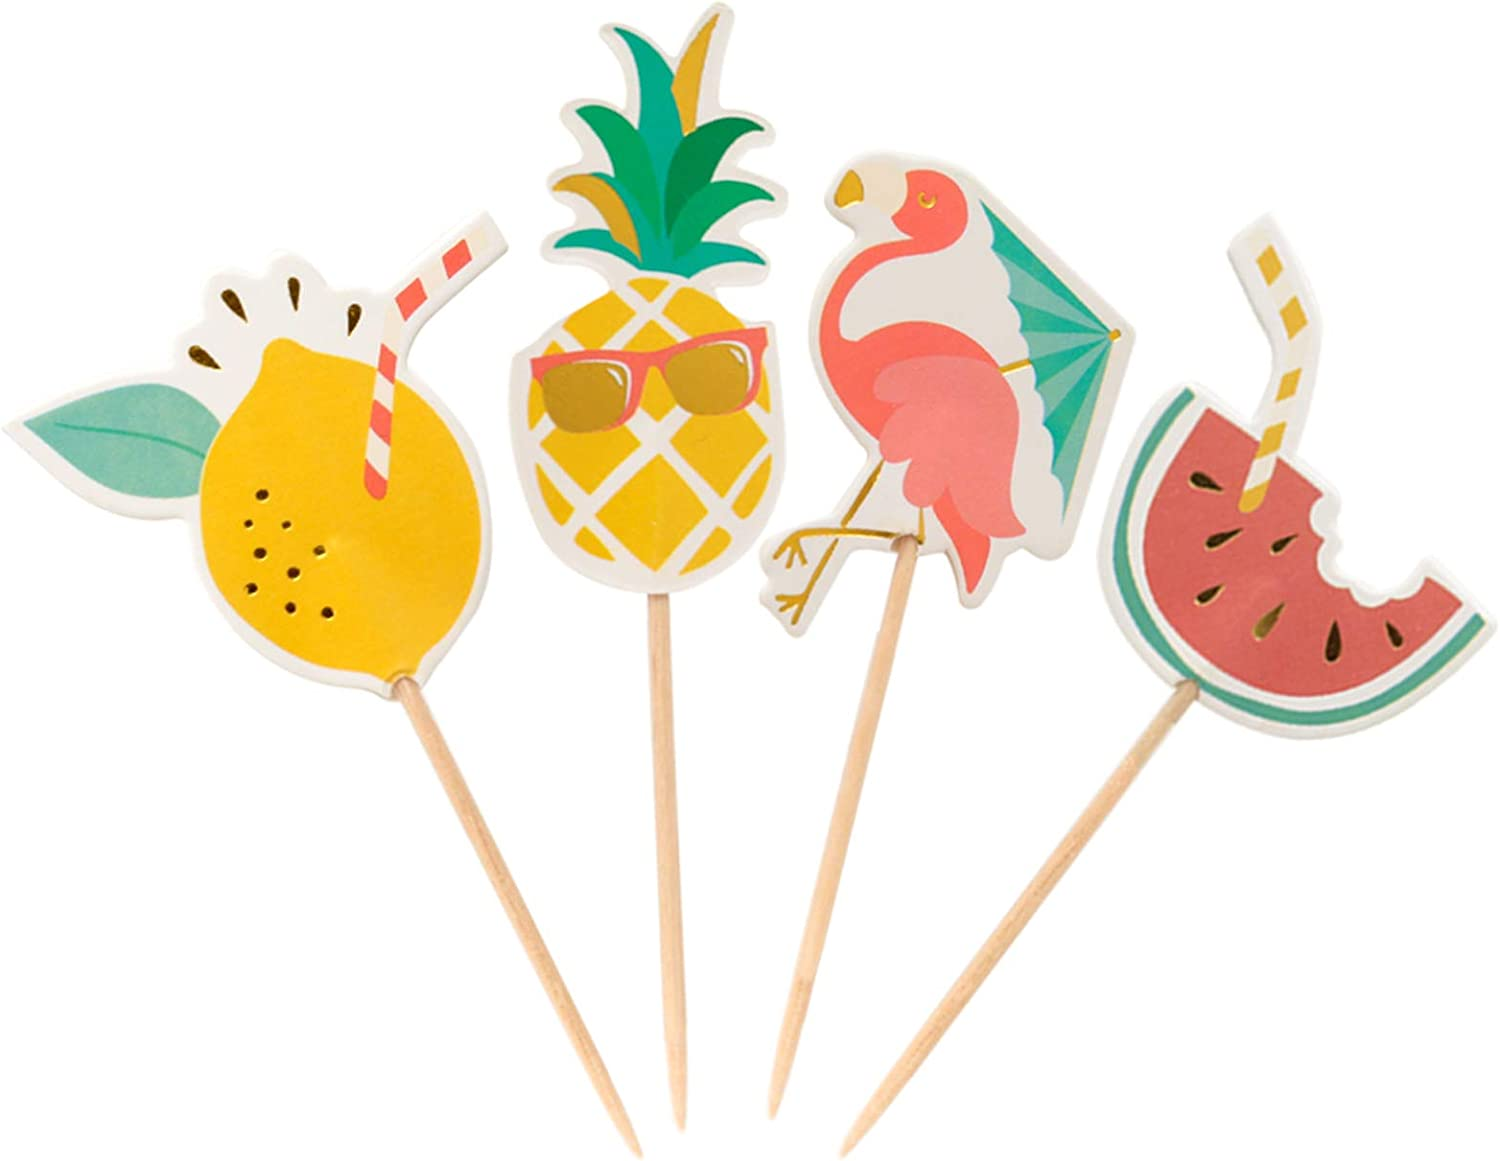 CHOUNYEE 48PCs Tropical Cupcake Topper for Birthday Party Summer Pineapple Party Decorations Cocktail Picks Watermelon Cupcake Toppers Cake Decorations